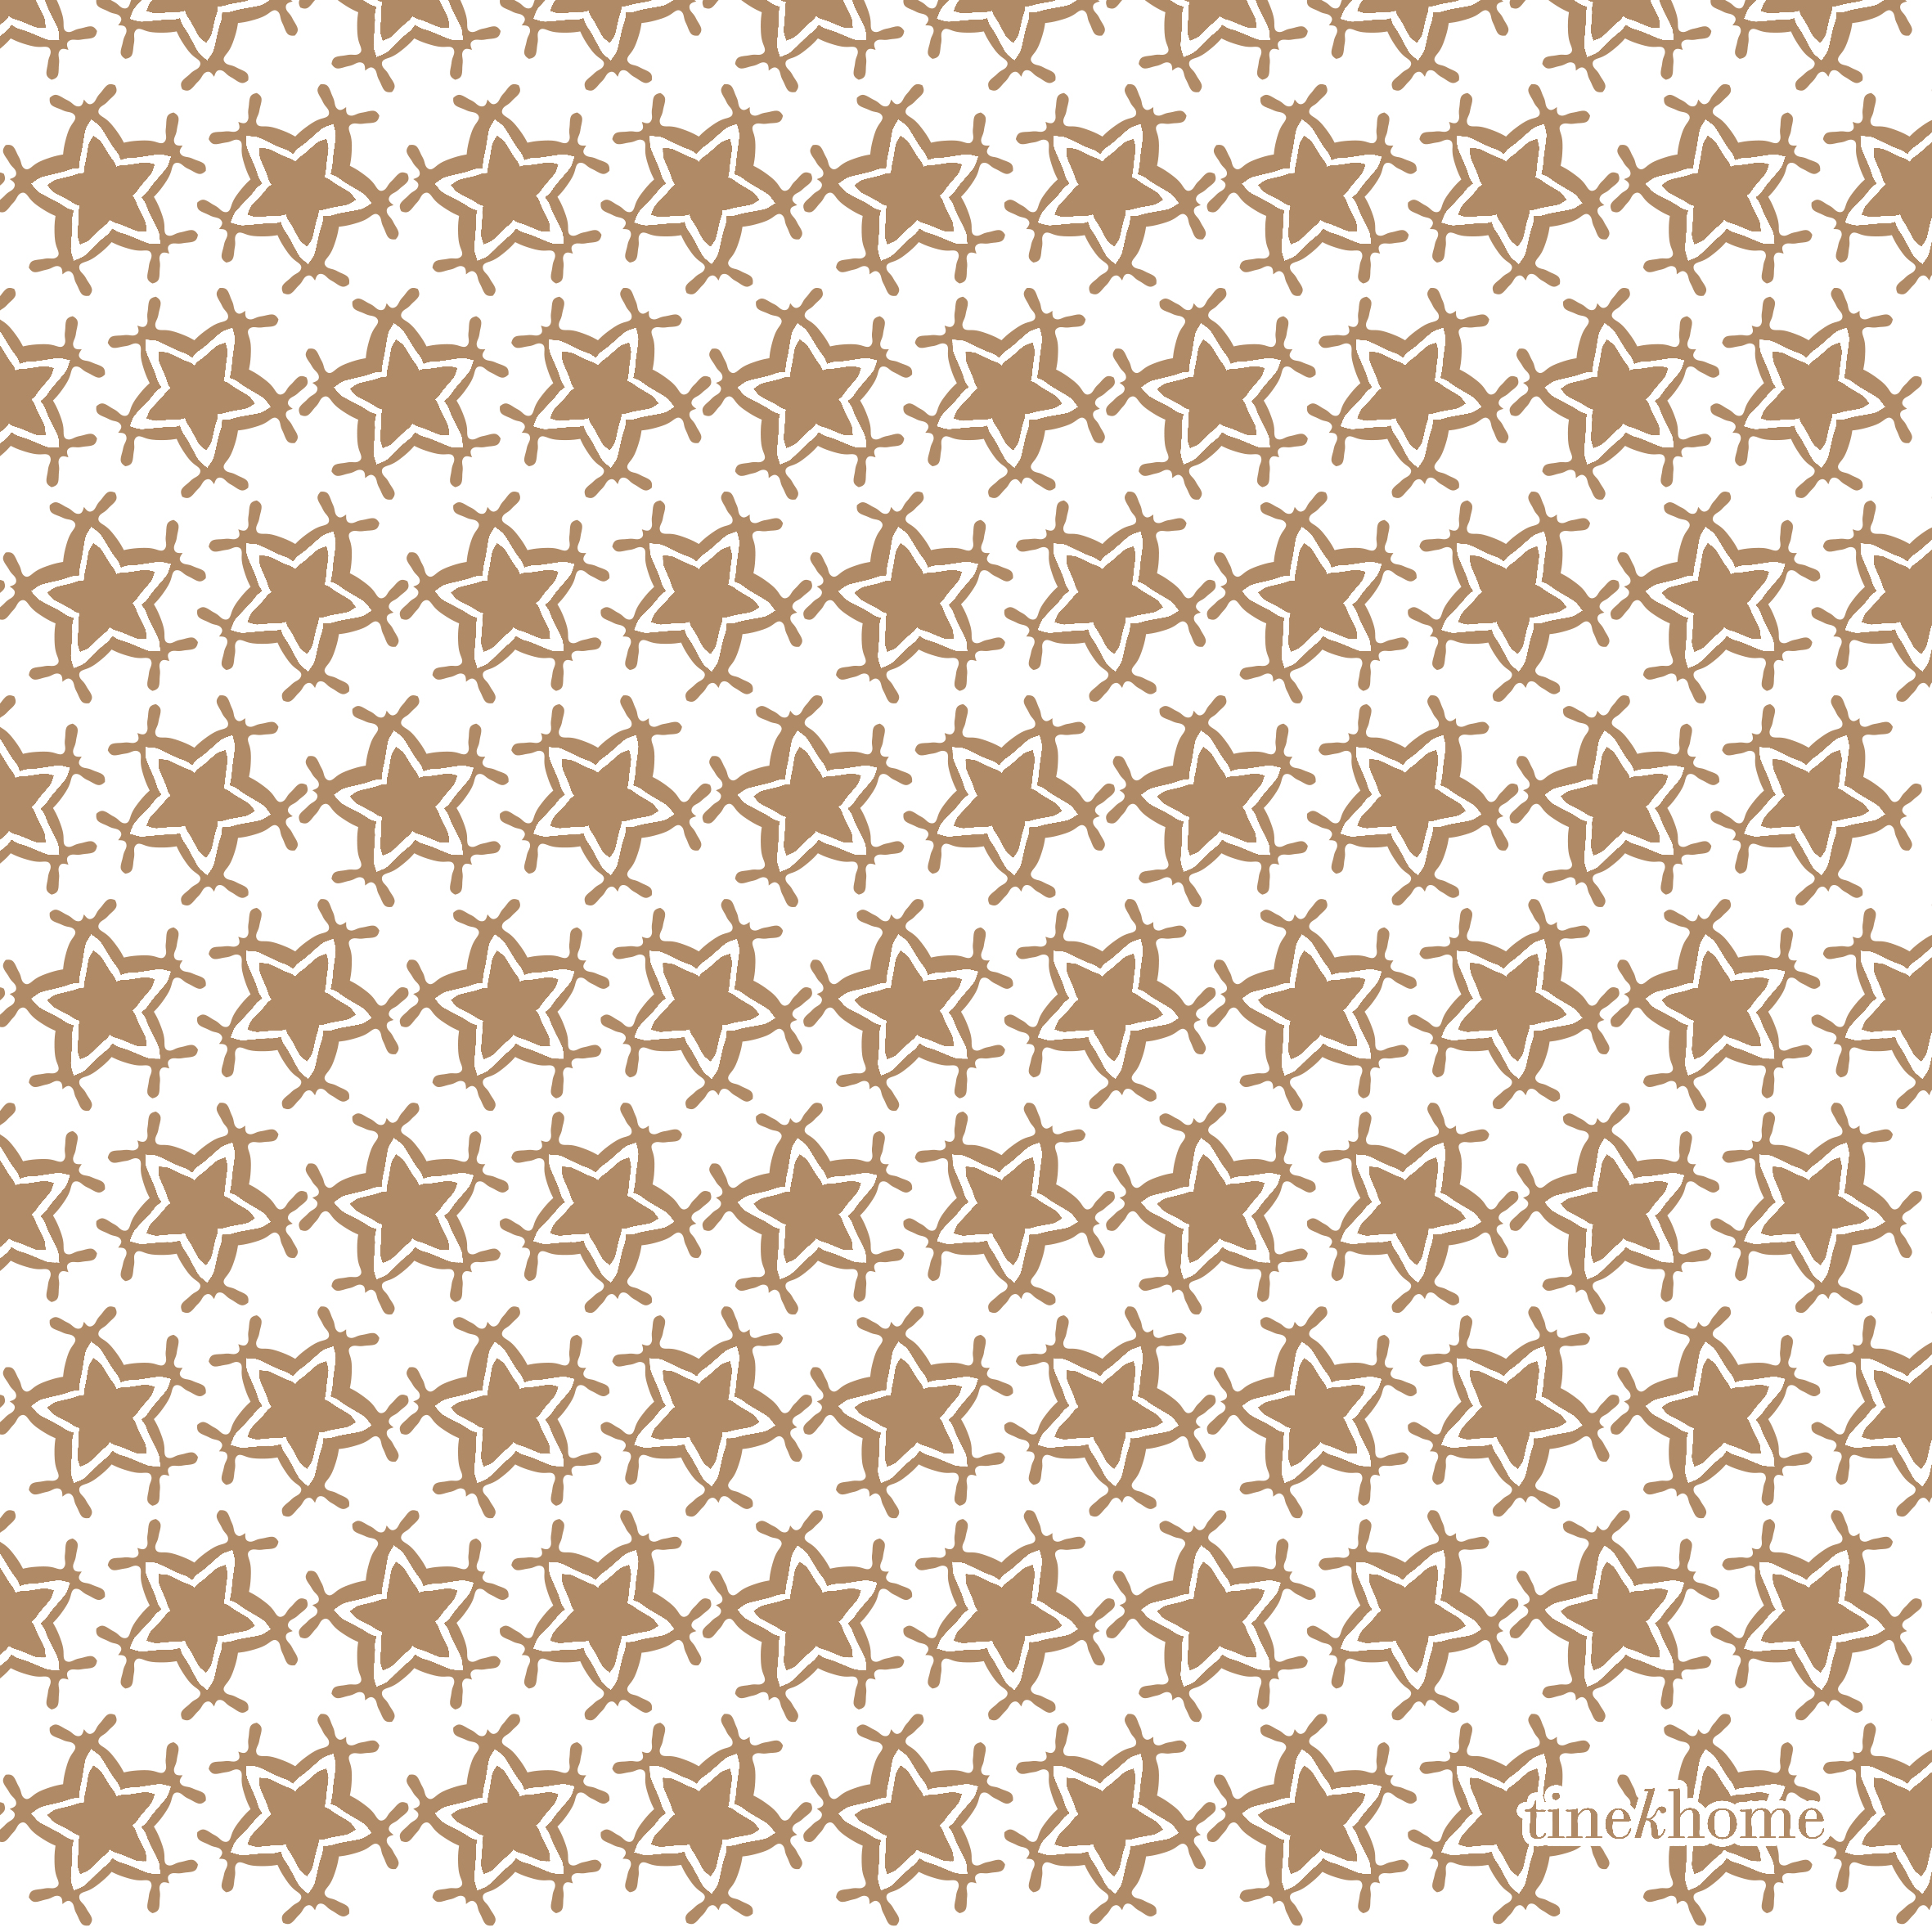 Anti Stain Proof Resistant Beige Top Quality Christmas Stars Napkins Pack of 6 units